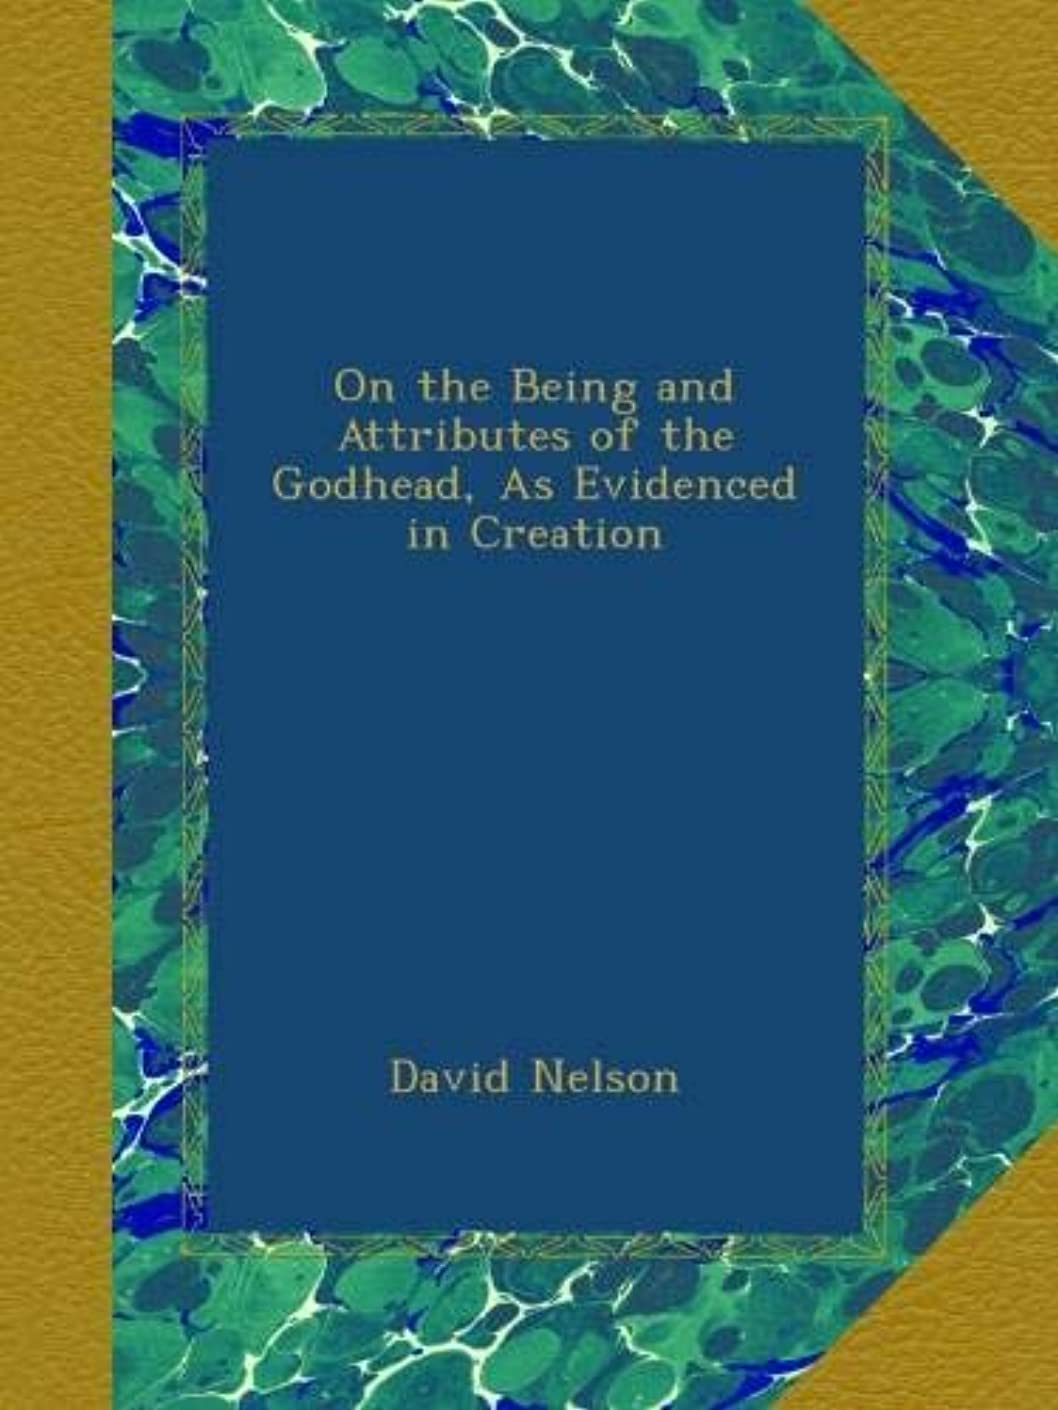 そよ風血打ち負かすOn the Being and Attributes of the Godhead, As Evidenced in Creation